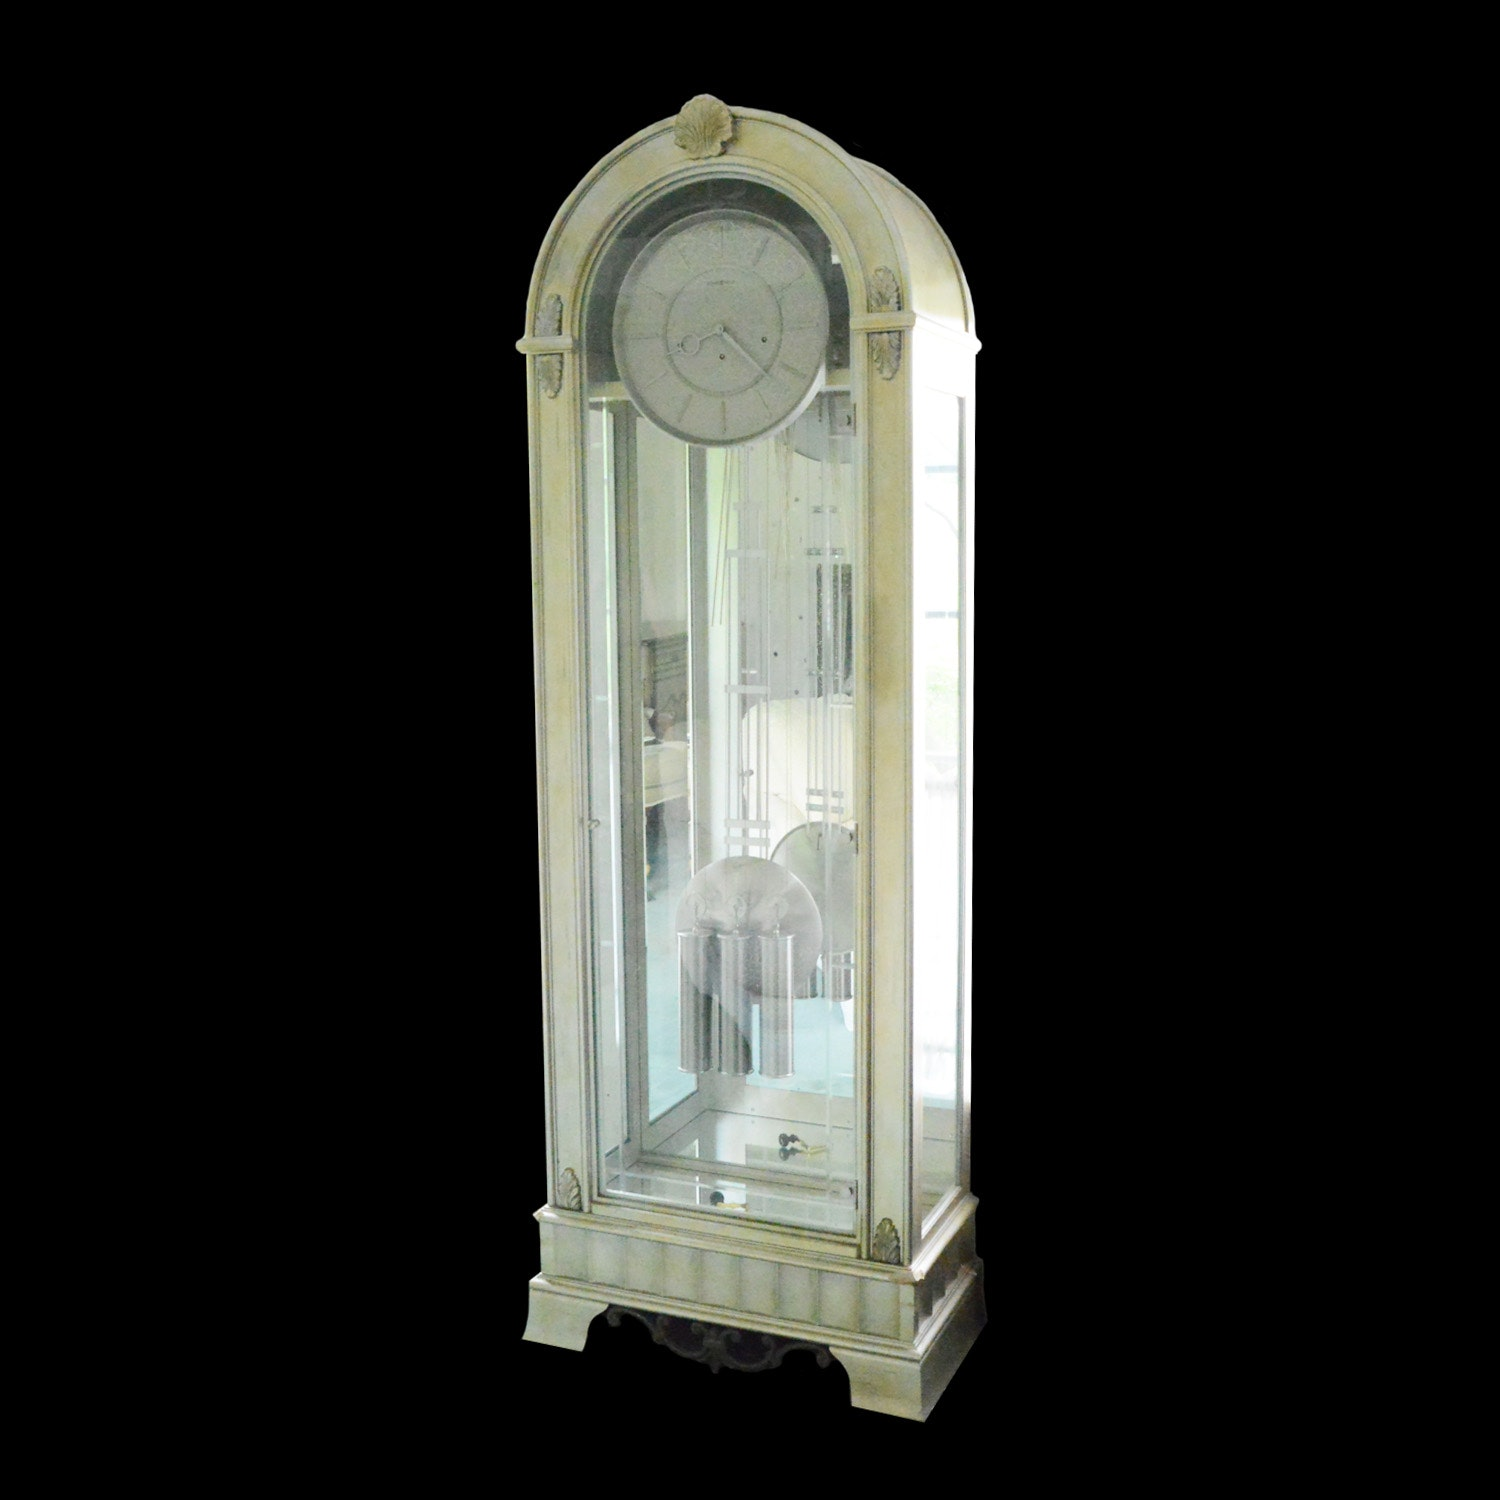 Quot Coastal Point Quot Grandfather Clock By Howard Miller Ebth